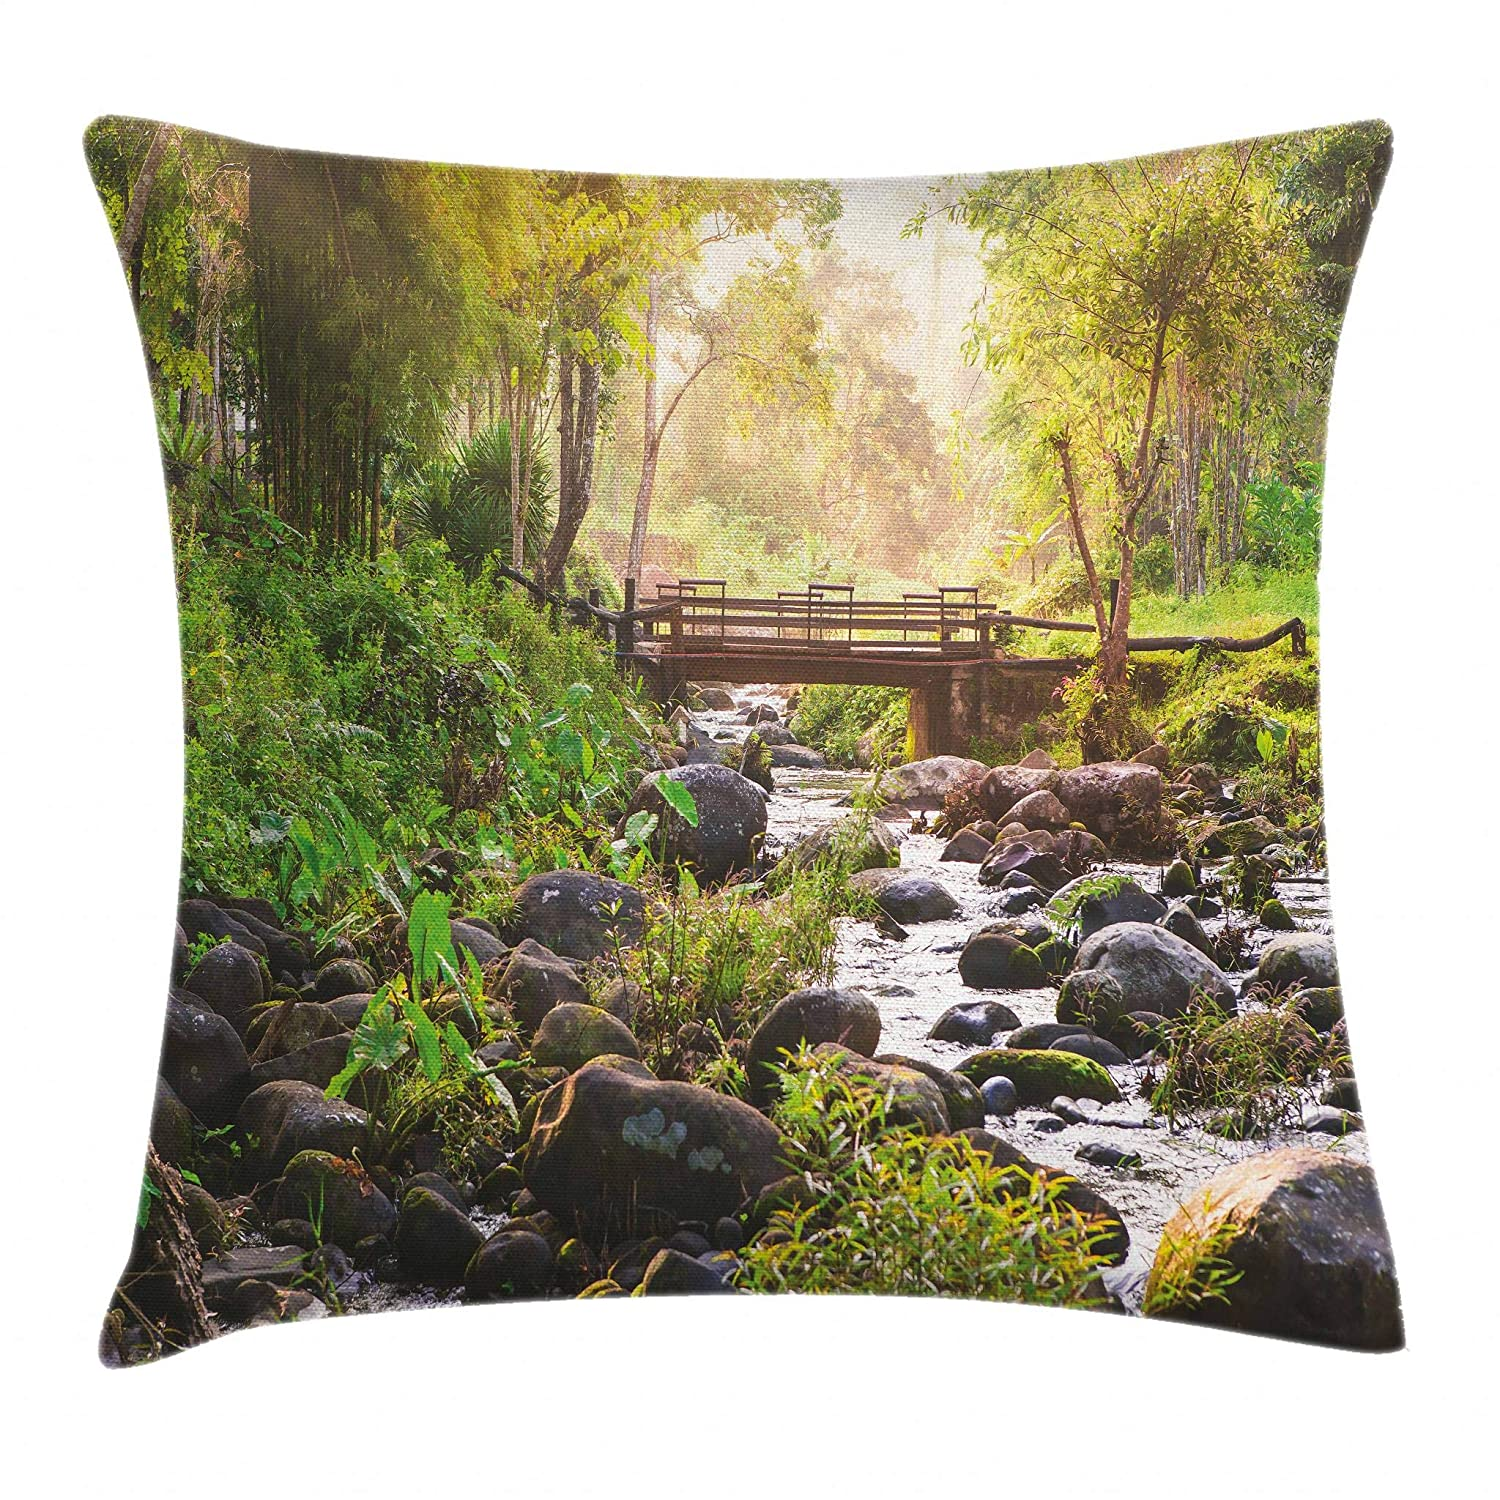 Decorative Square Accent Pillow Case Small Waterfall in Deep Forest Thailand Sunlight Morning Nature Scenery Ambesonne Landscape Throw Pillow Cushion Cover 18 X 18 Inches Green Grey Brown